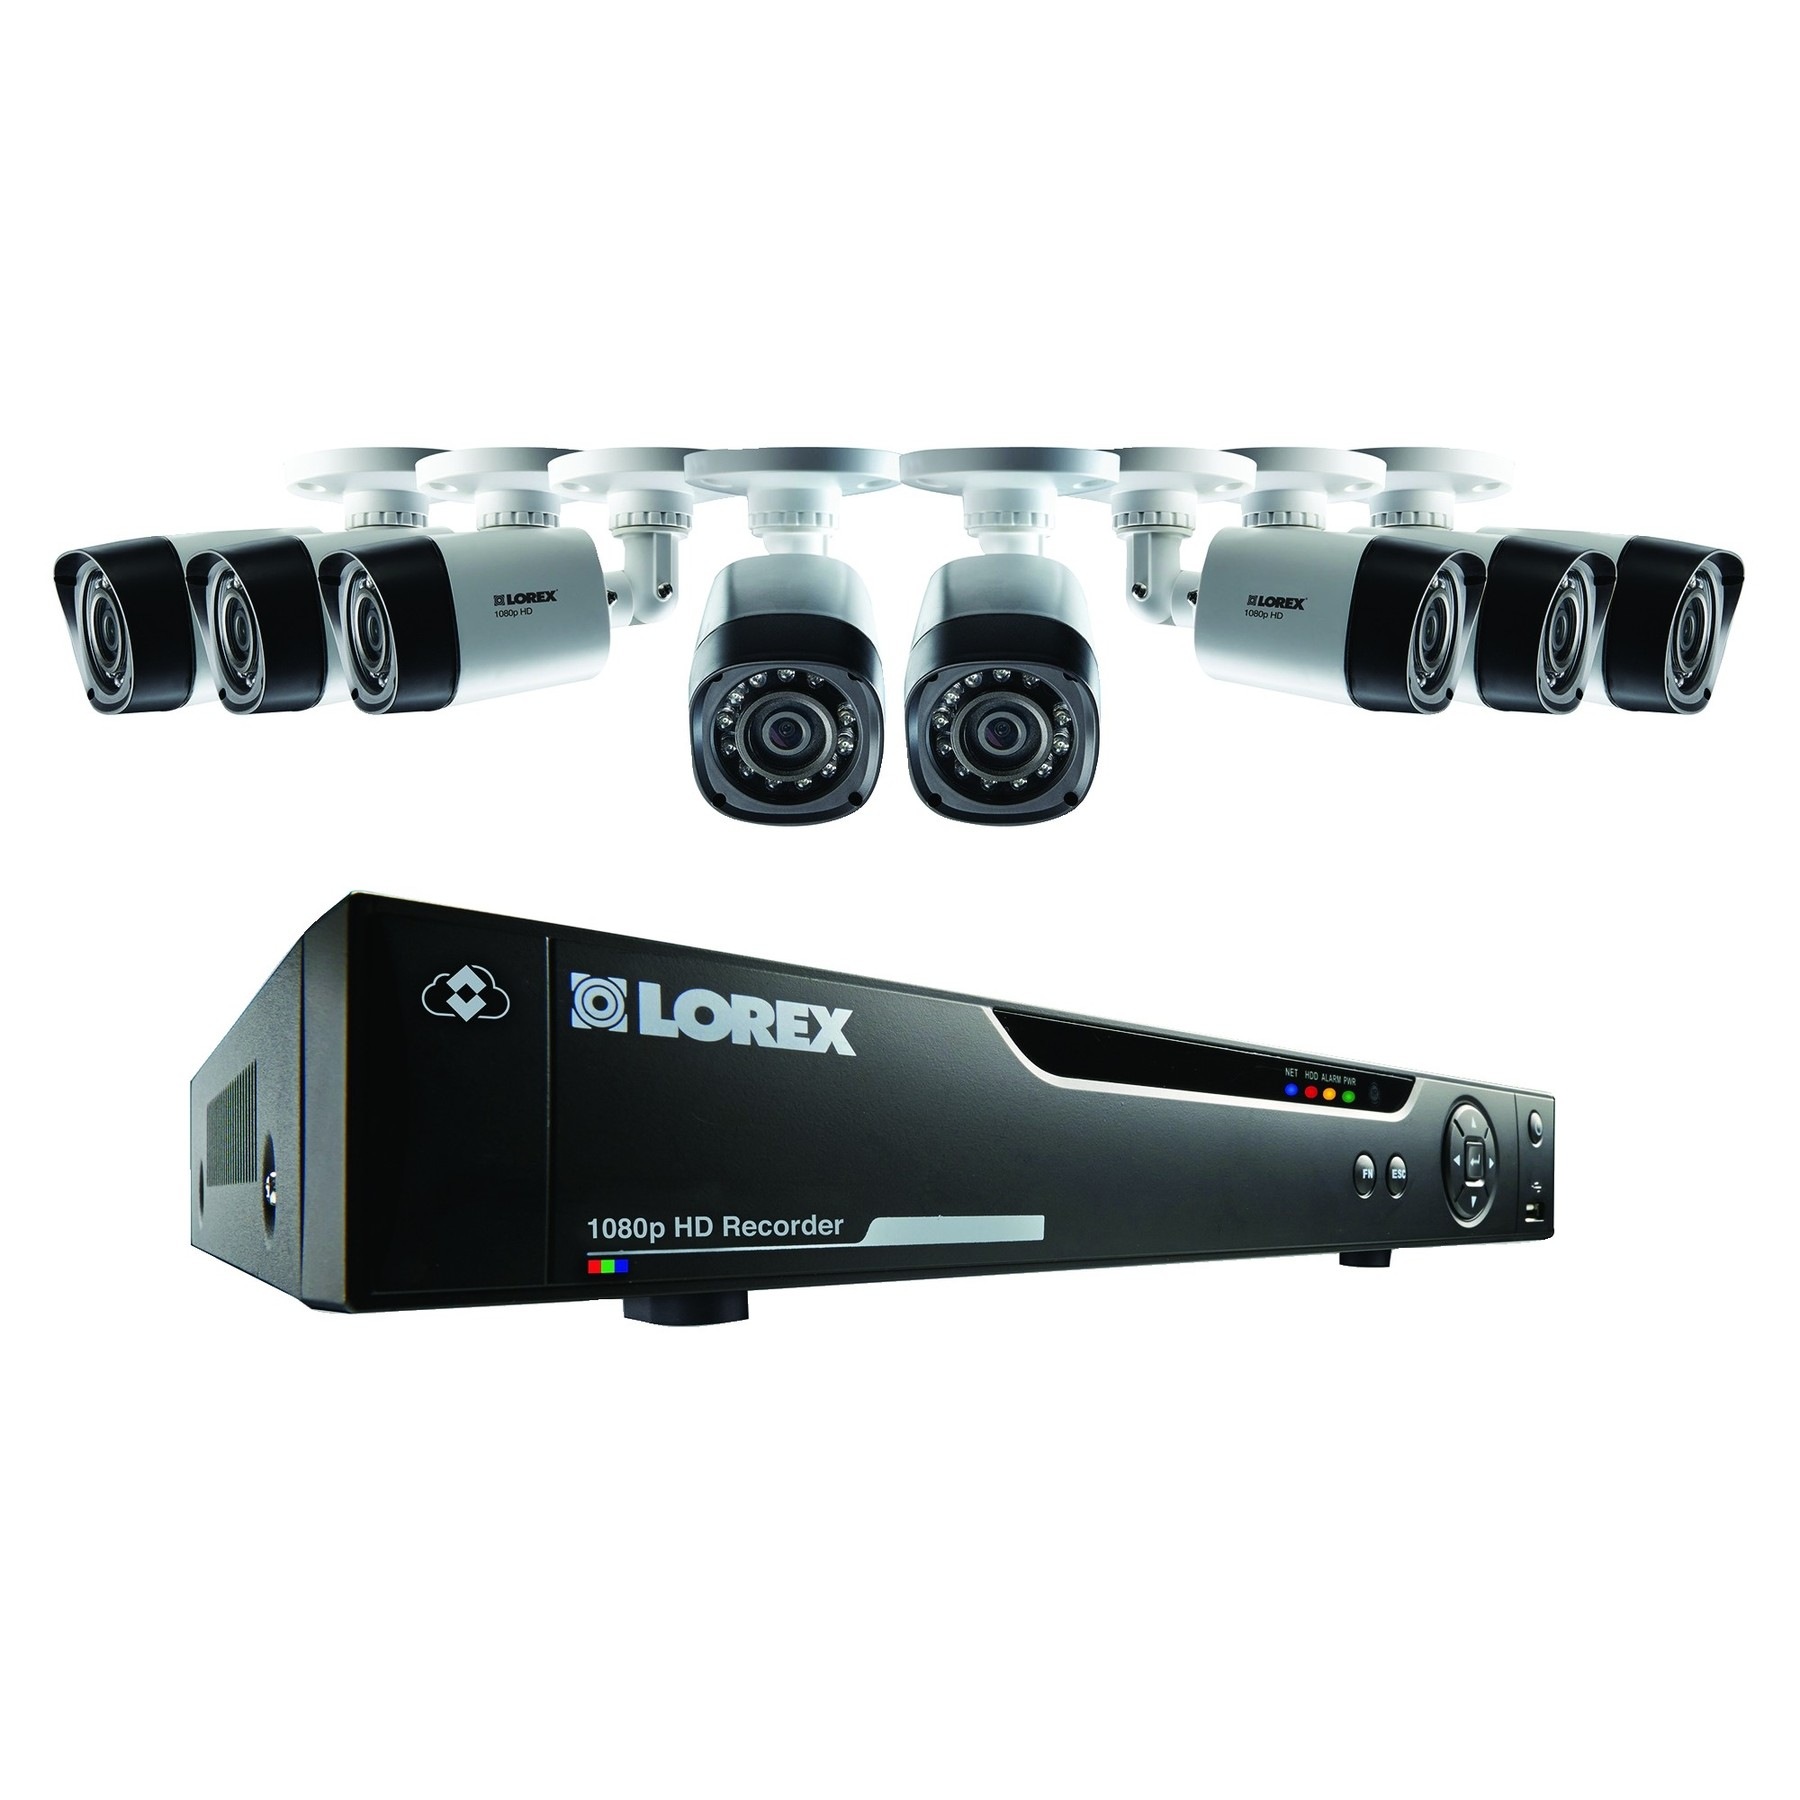 Lorex by FLIR LHVTC4 8-Channel p HD MPX DVR with 4 p Weatherproof IR Cameras electronic consumer.